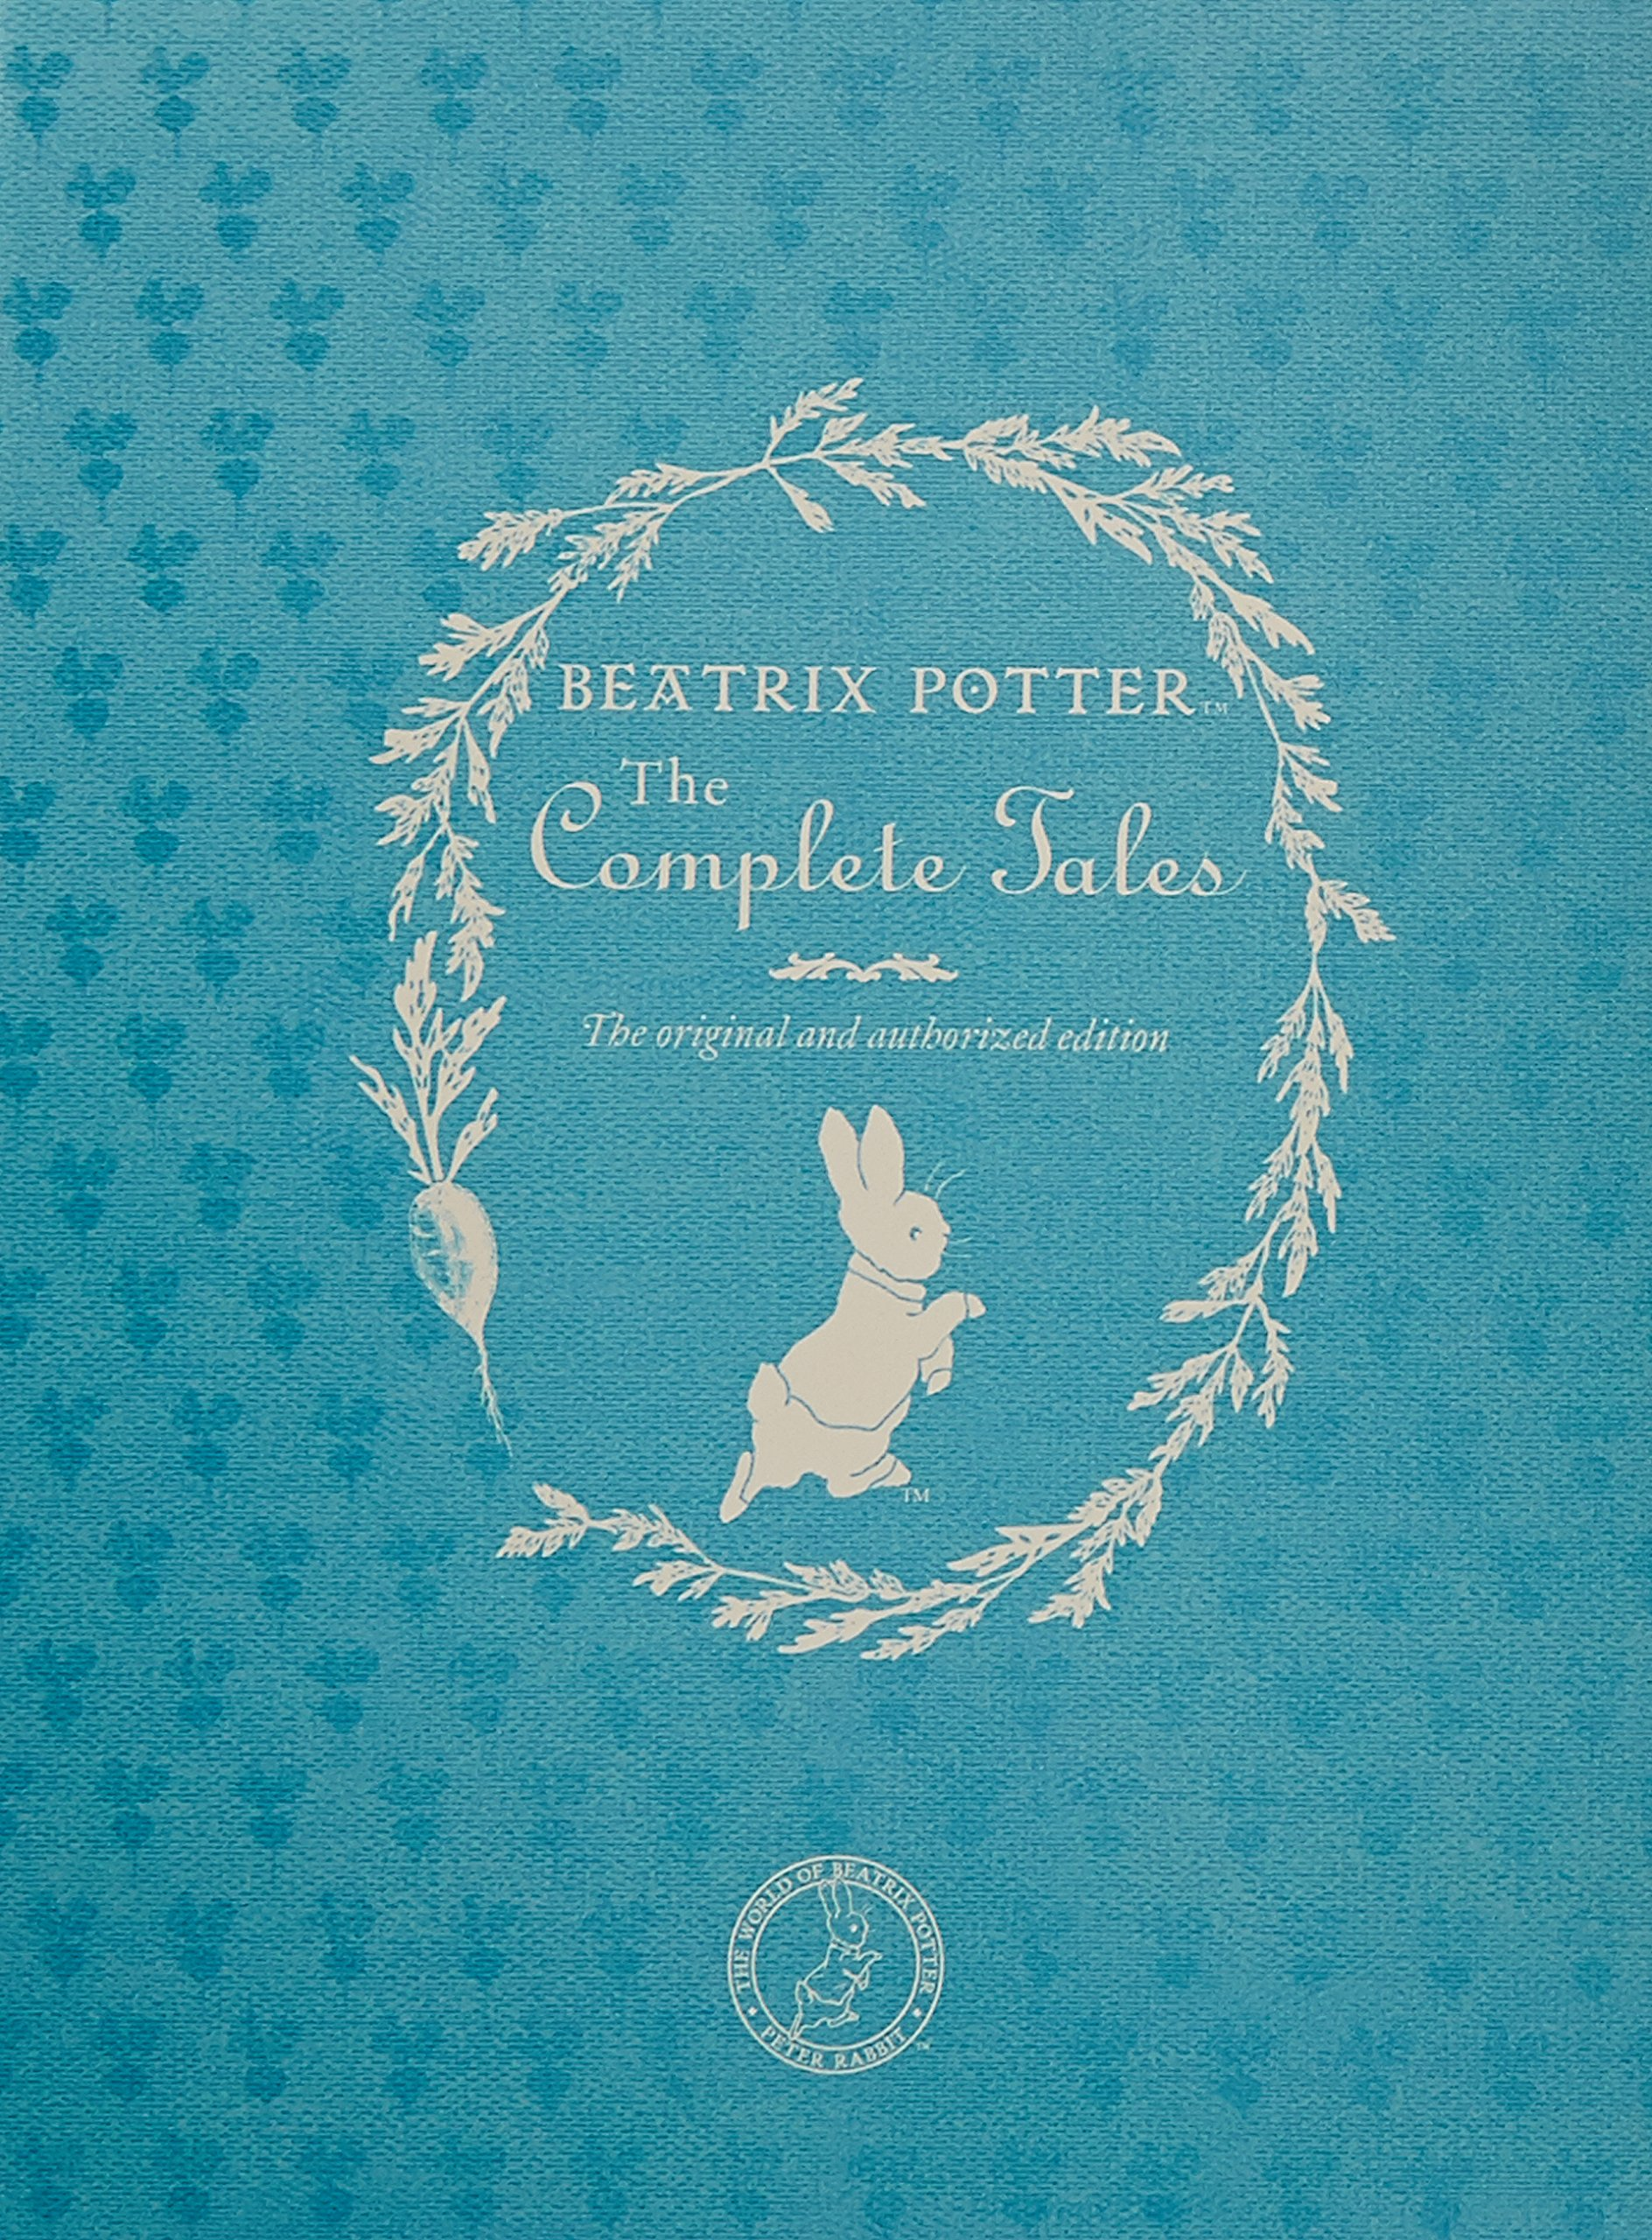 Beatrix Potter the Complete Tales (Peter Rabbit) by Frederick Warne and Company (Image #2)